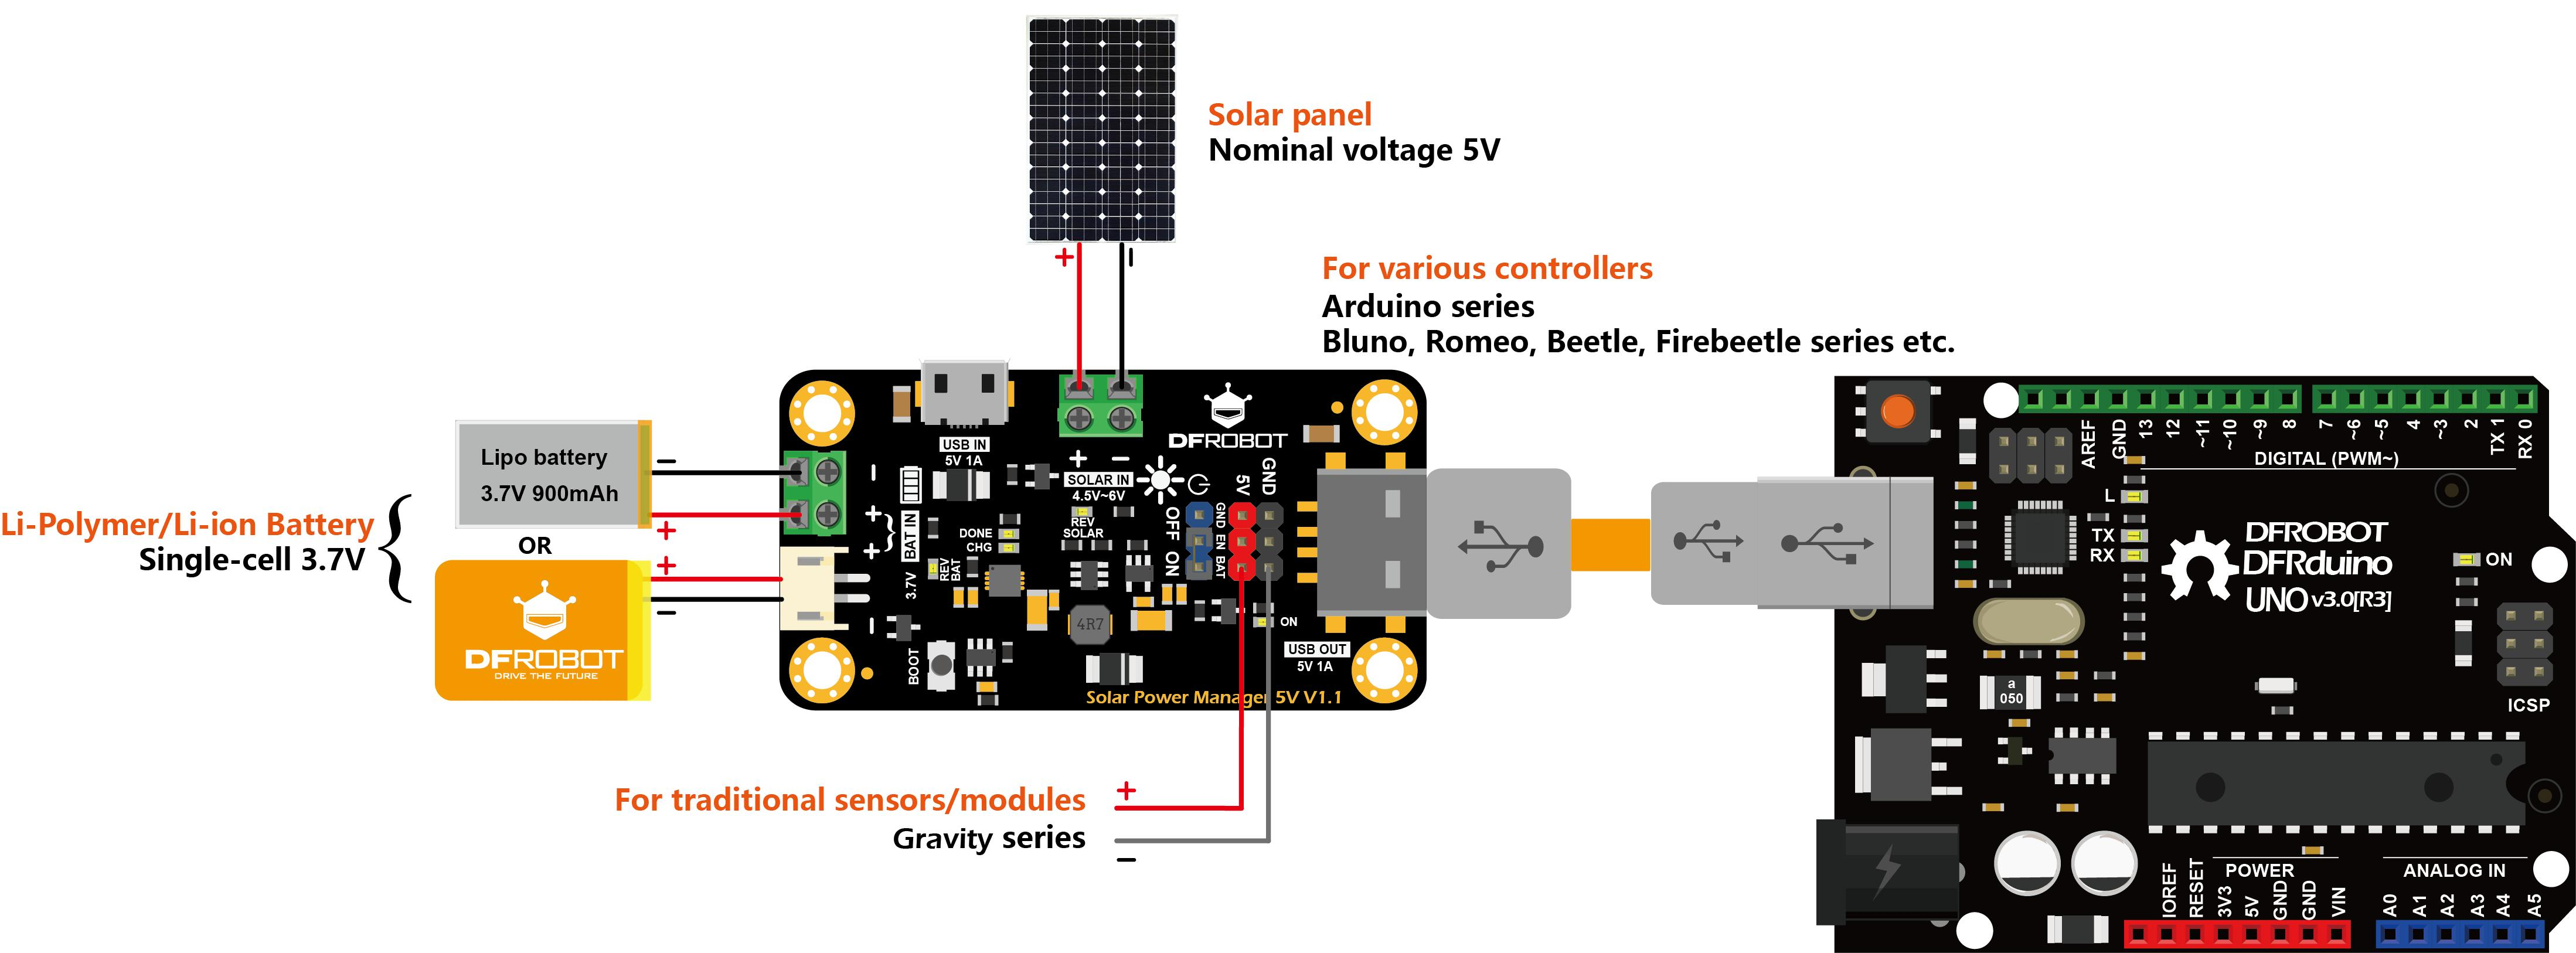 Solar Power Manager 5V Connection Diagram